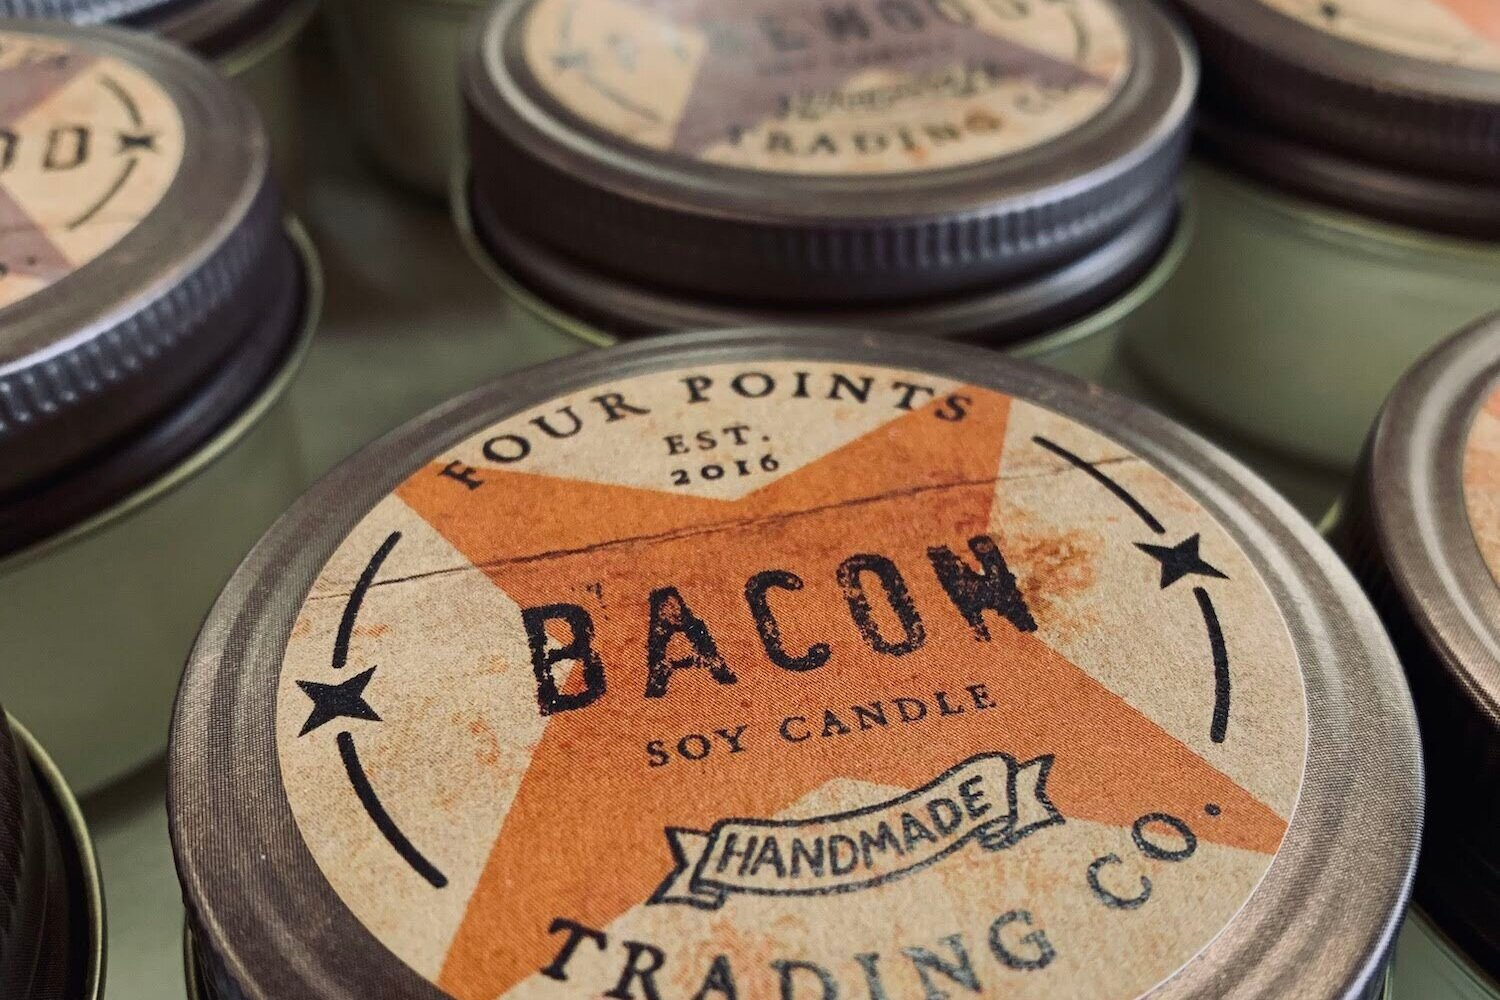 Four Points Trading Co. - Our candles are created with uniquely designed fragrances that have the power to evoke experiences and trigger nostalgic emotions. With every flicker of the flame creating a one of a kind atmosphere that will entice your senses. Every scent tells a story.